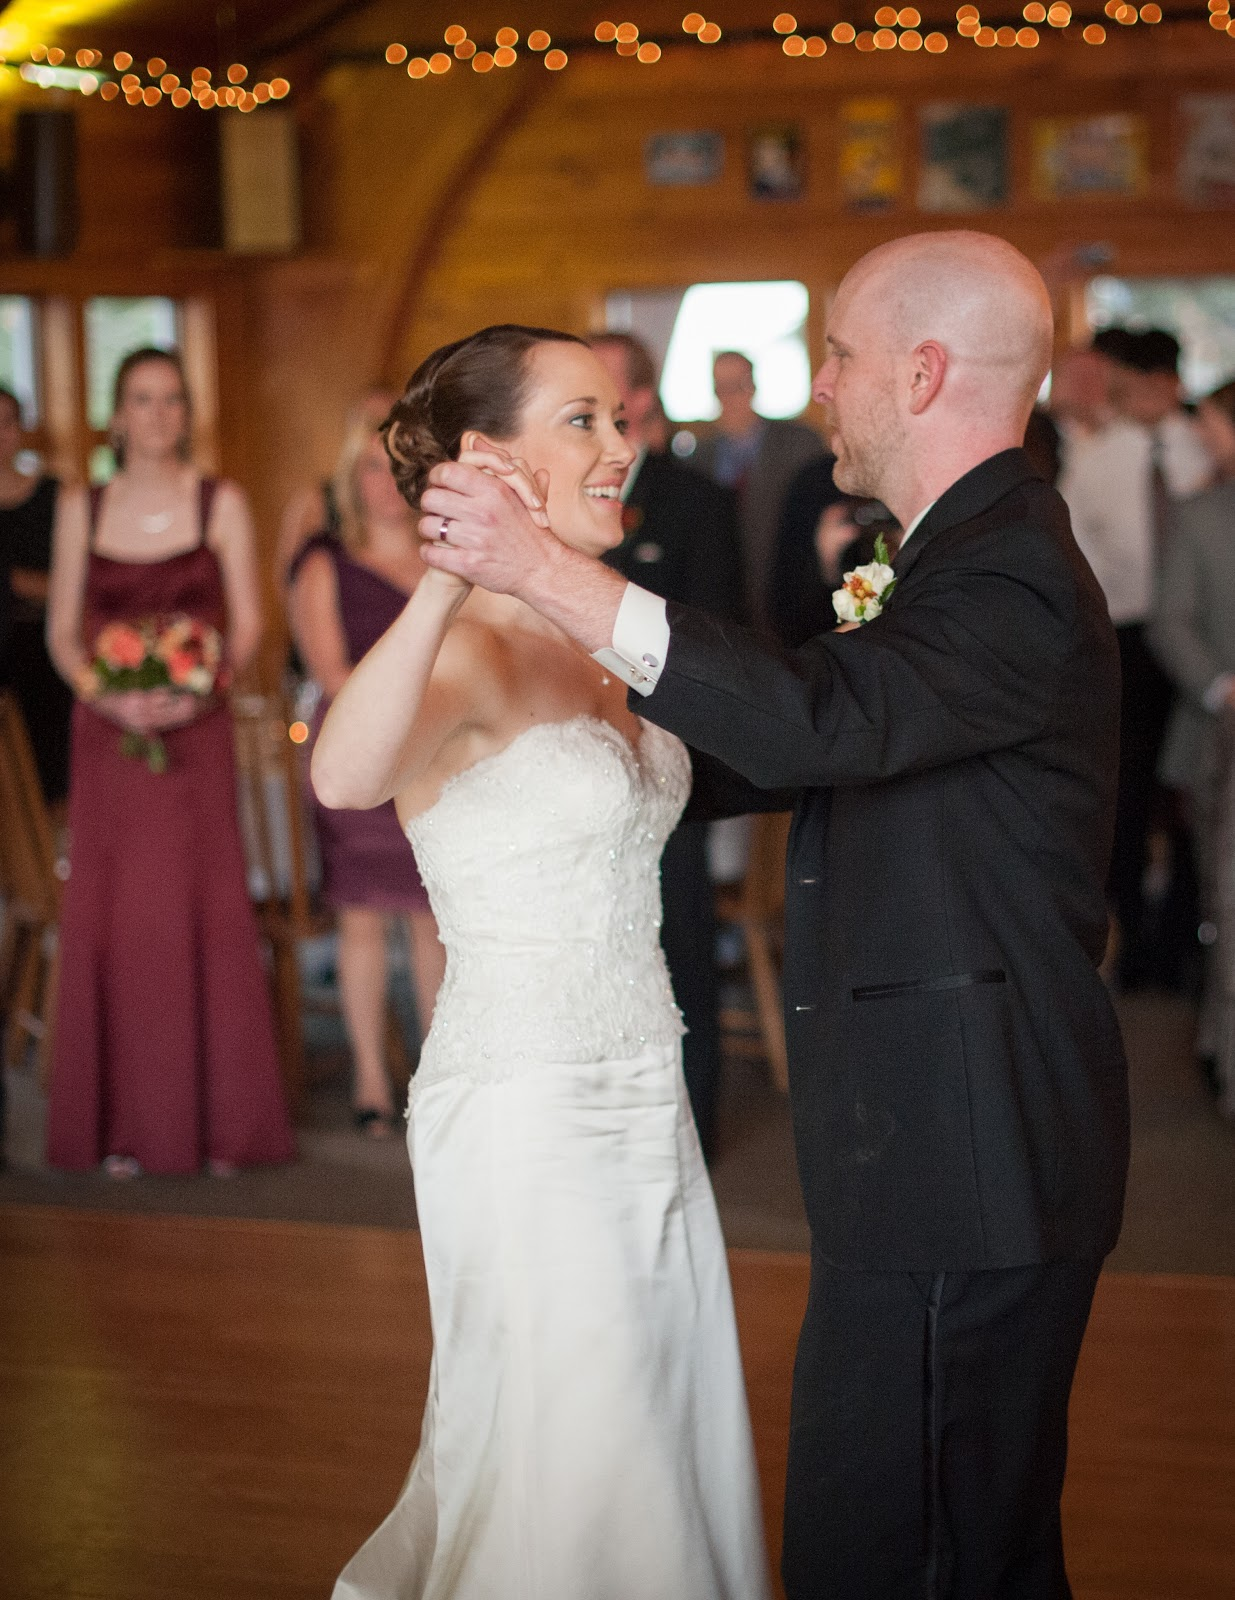 For This Wedding Wednesday Post I Thought It Would Be Fun To Share Some Photos Of Our First Dance As Husband And Wife Well Parents Dances